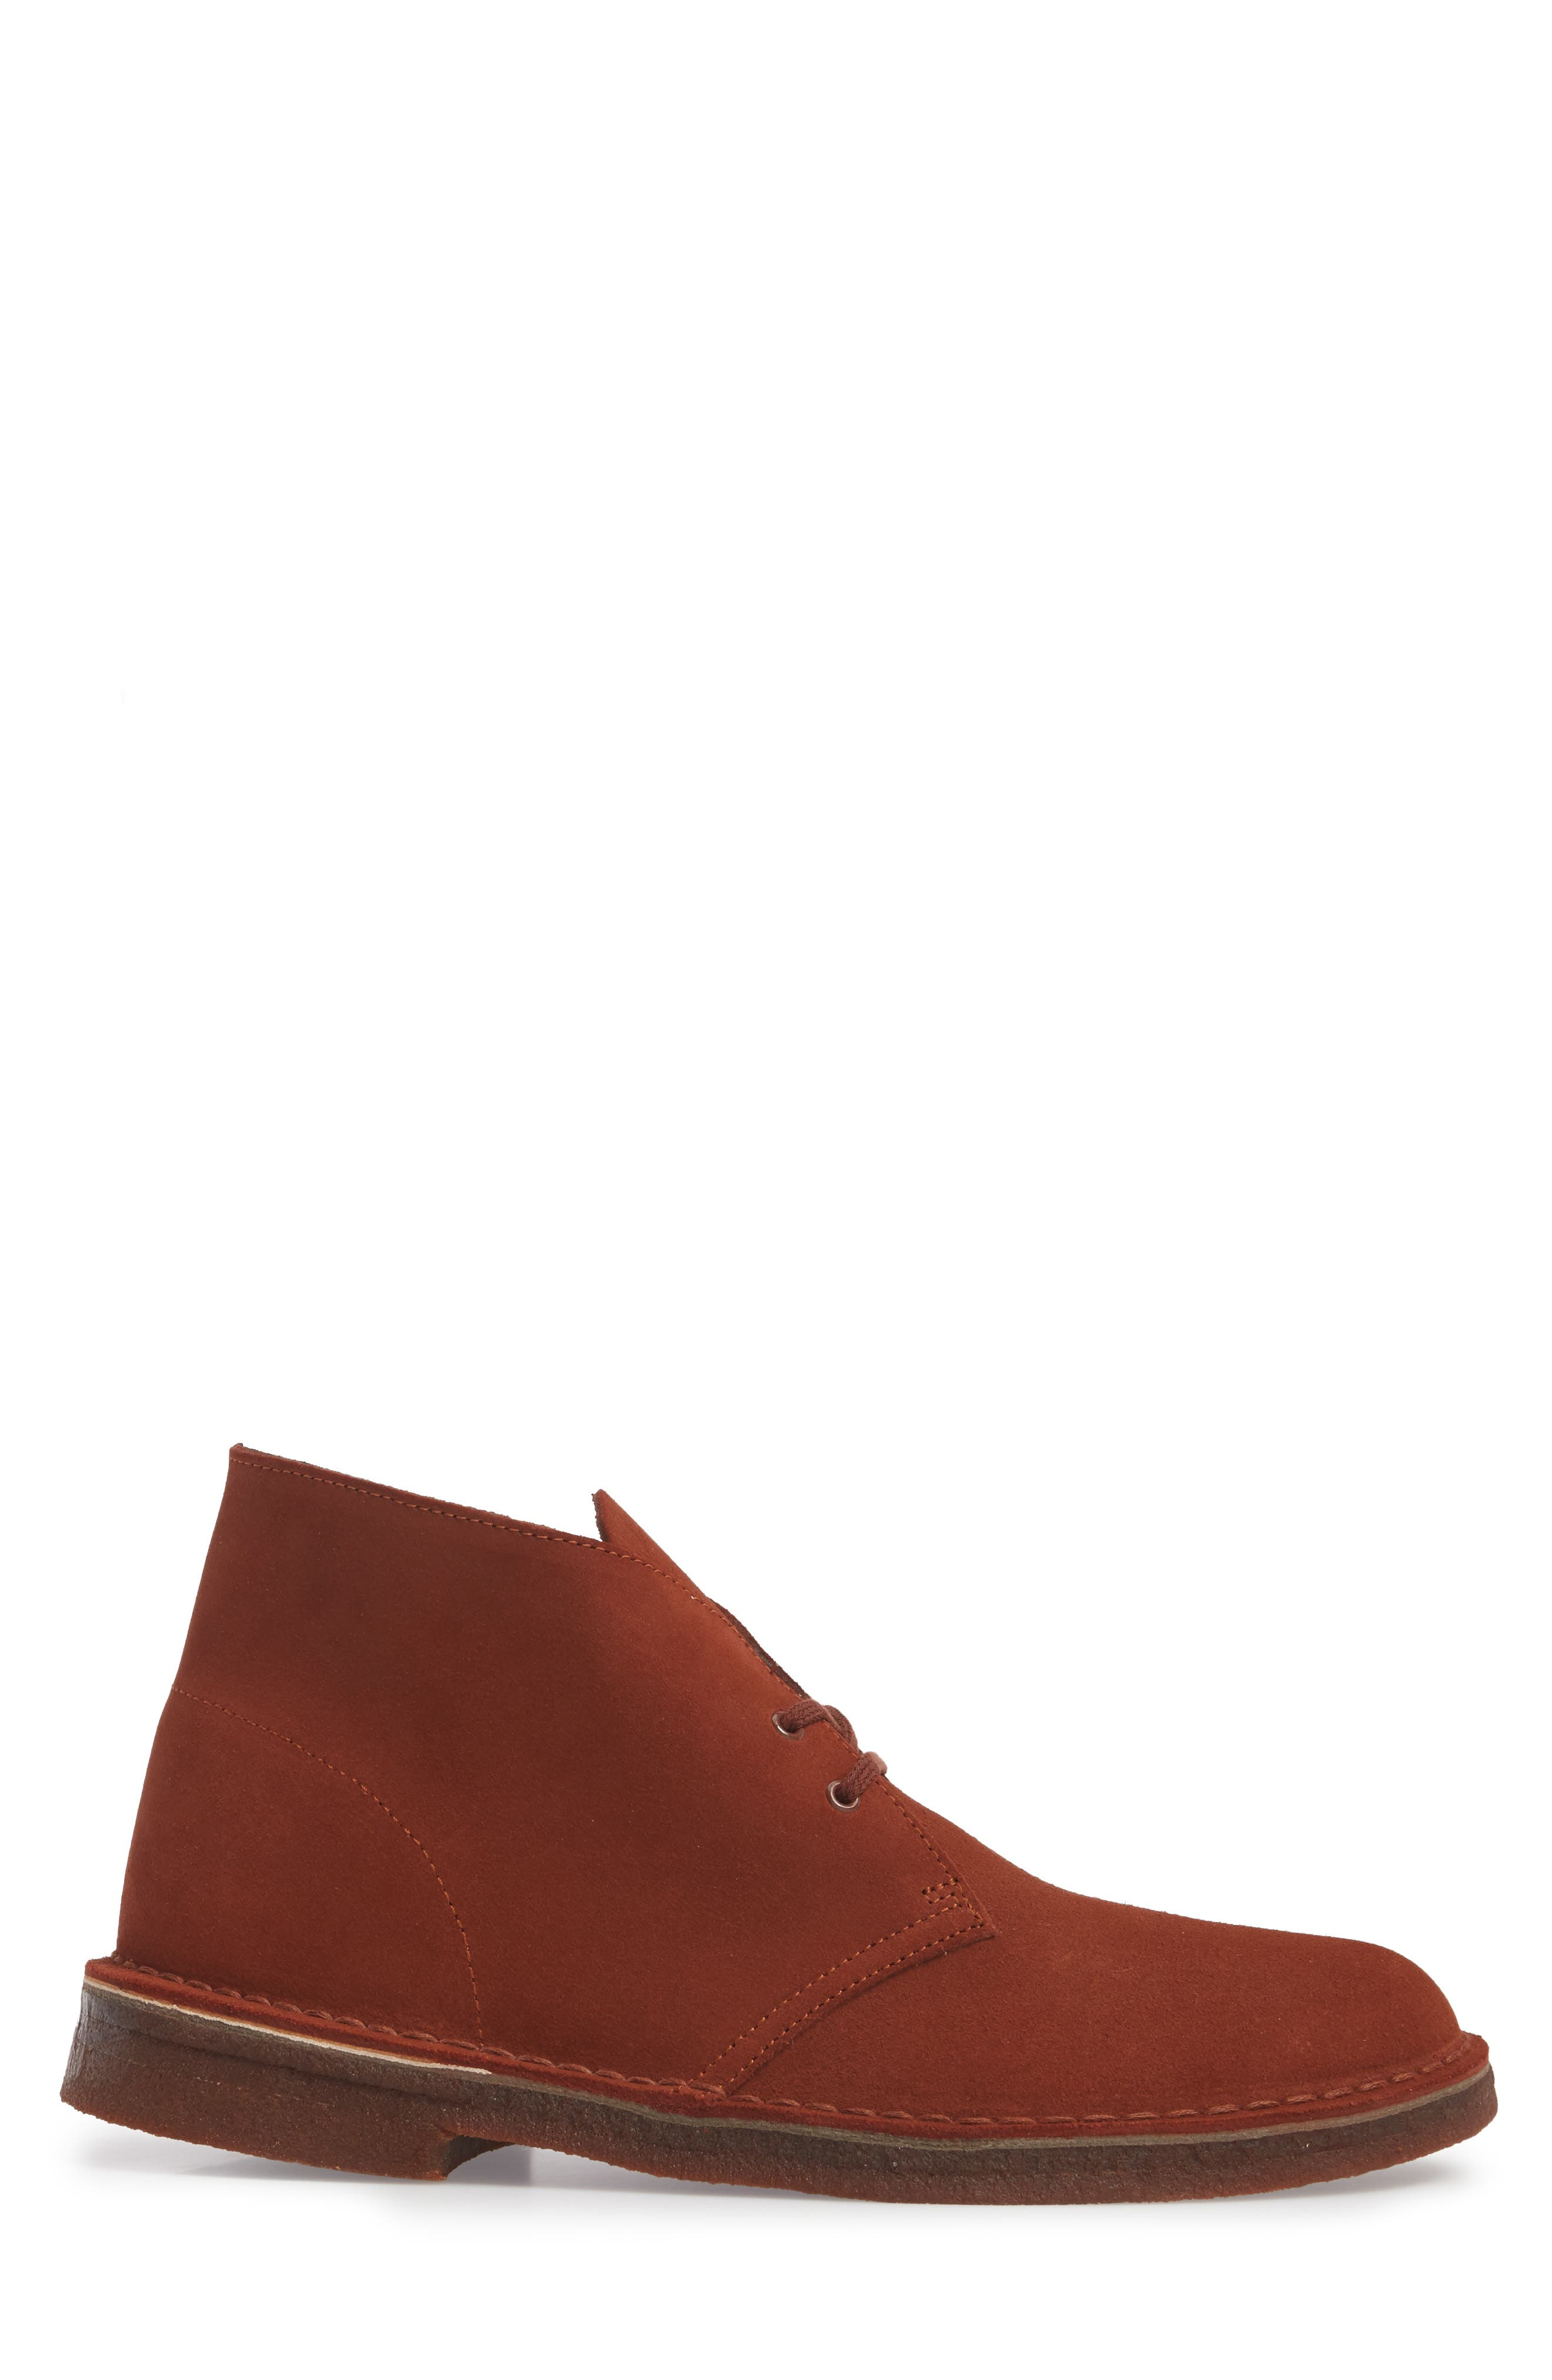 Clarks<sup>®</sup> Desert Boot,                             Alternate thumbnail 3, color,                             Mahogany Leather